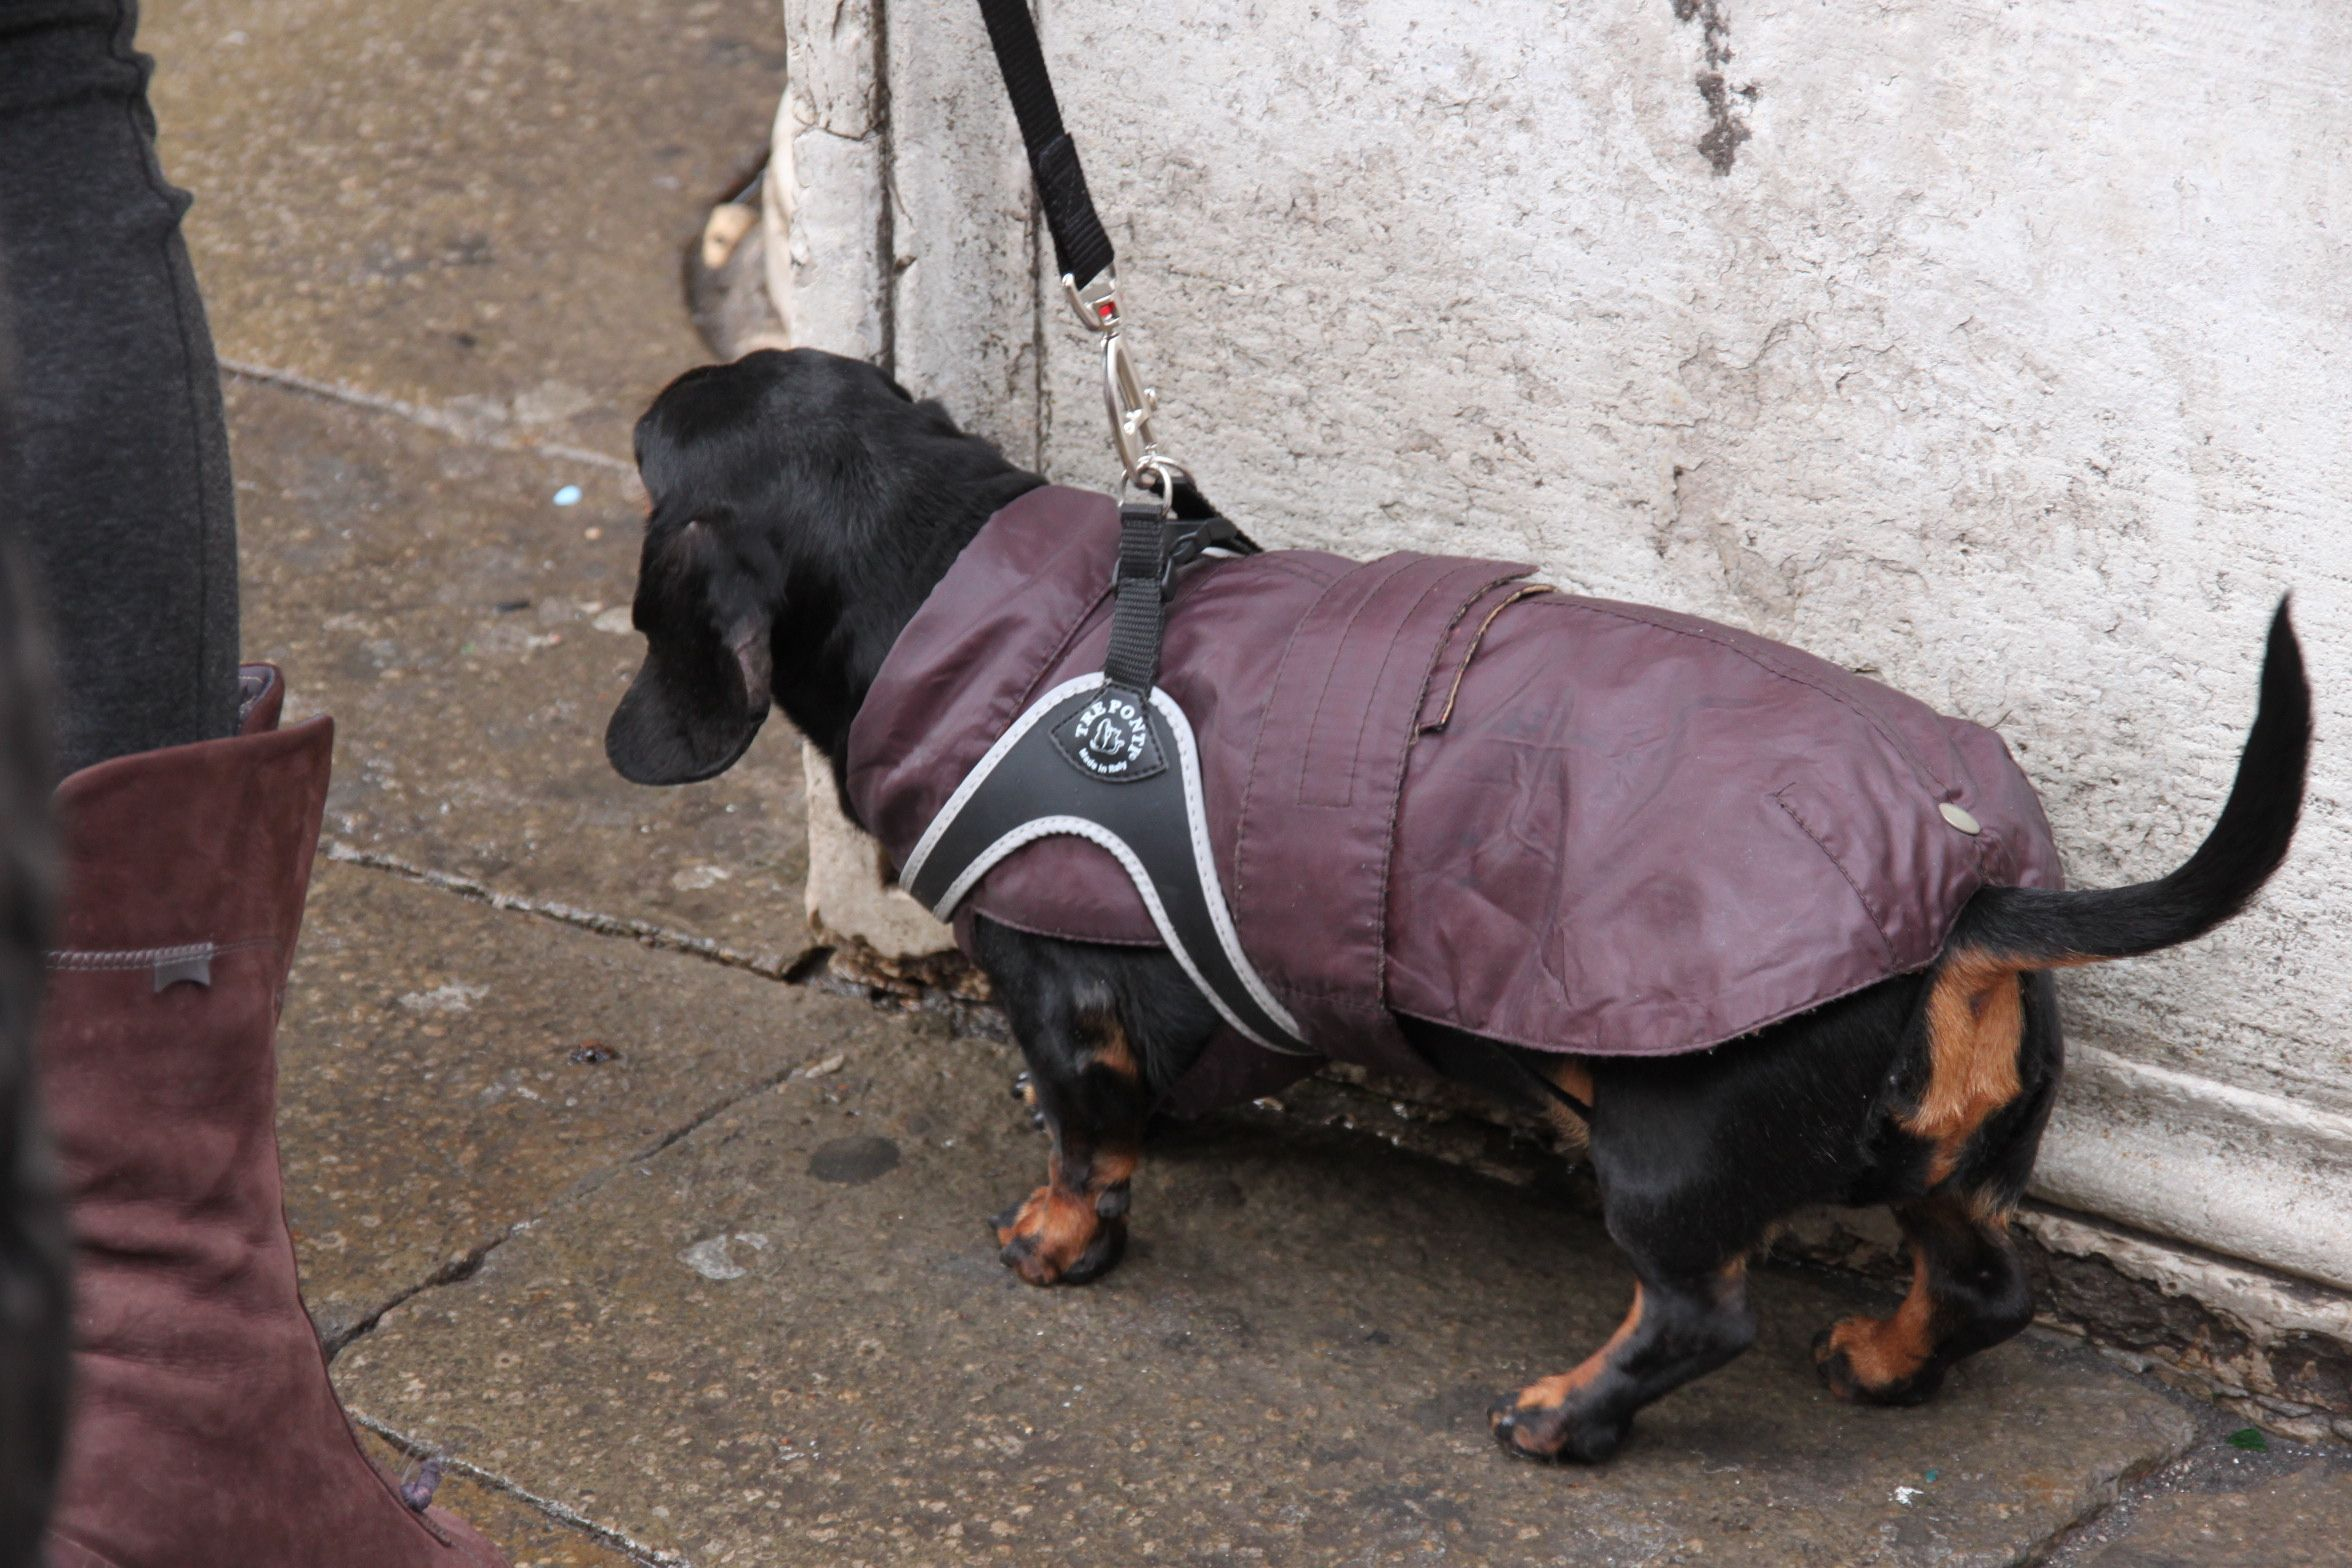 A sausage dog wrapped up against the rain